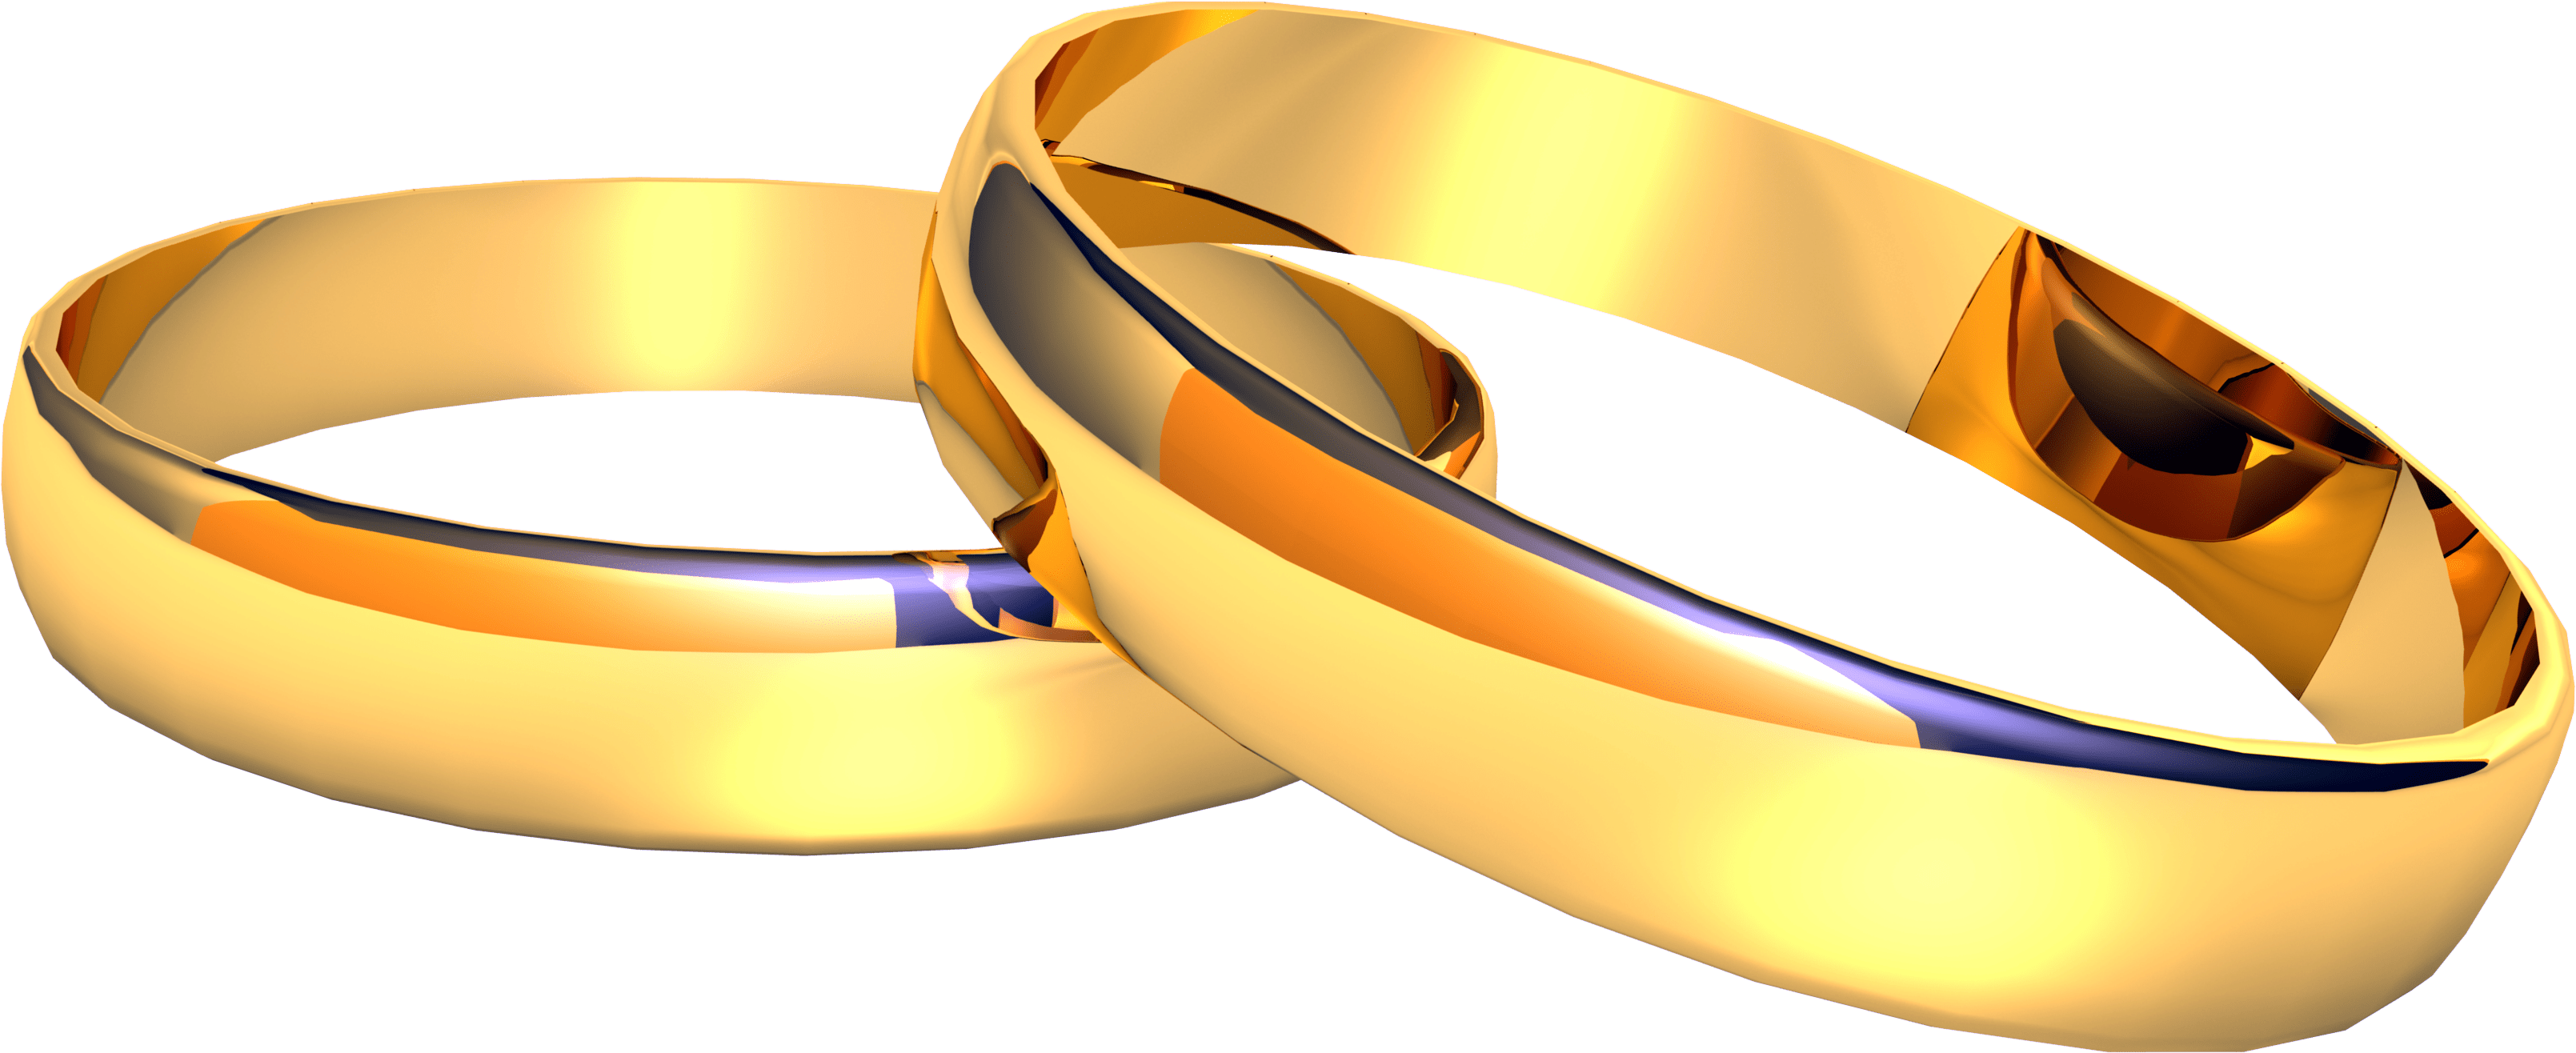 Wedding rings transparent png. Engagement clipart shiny ring